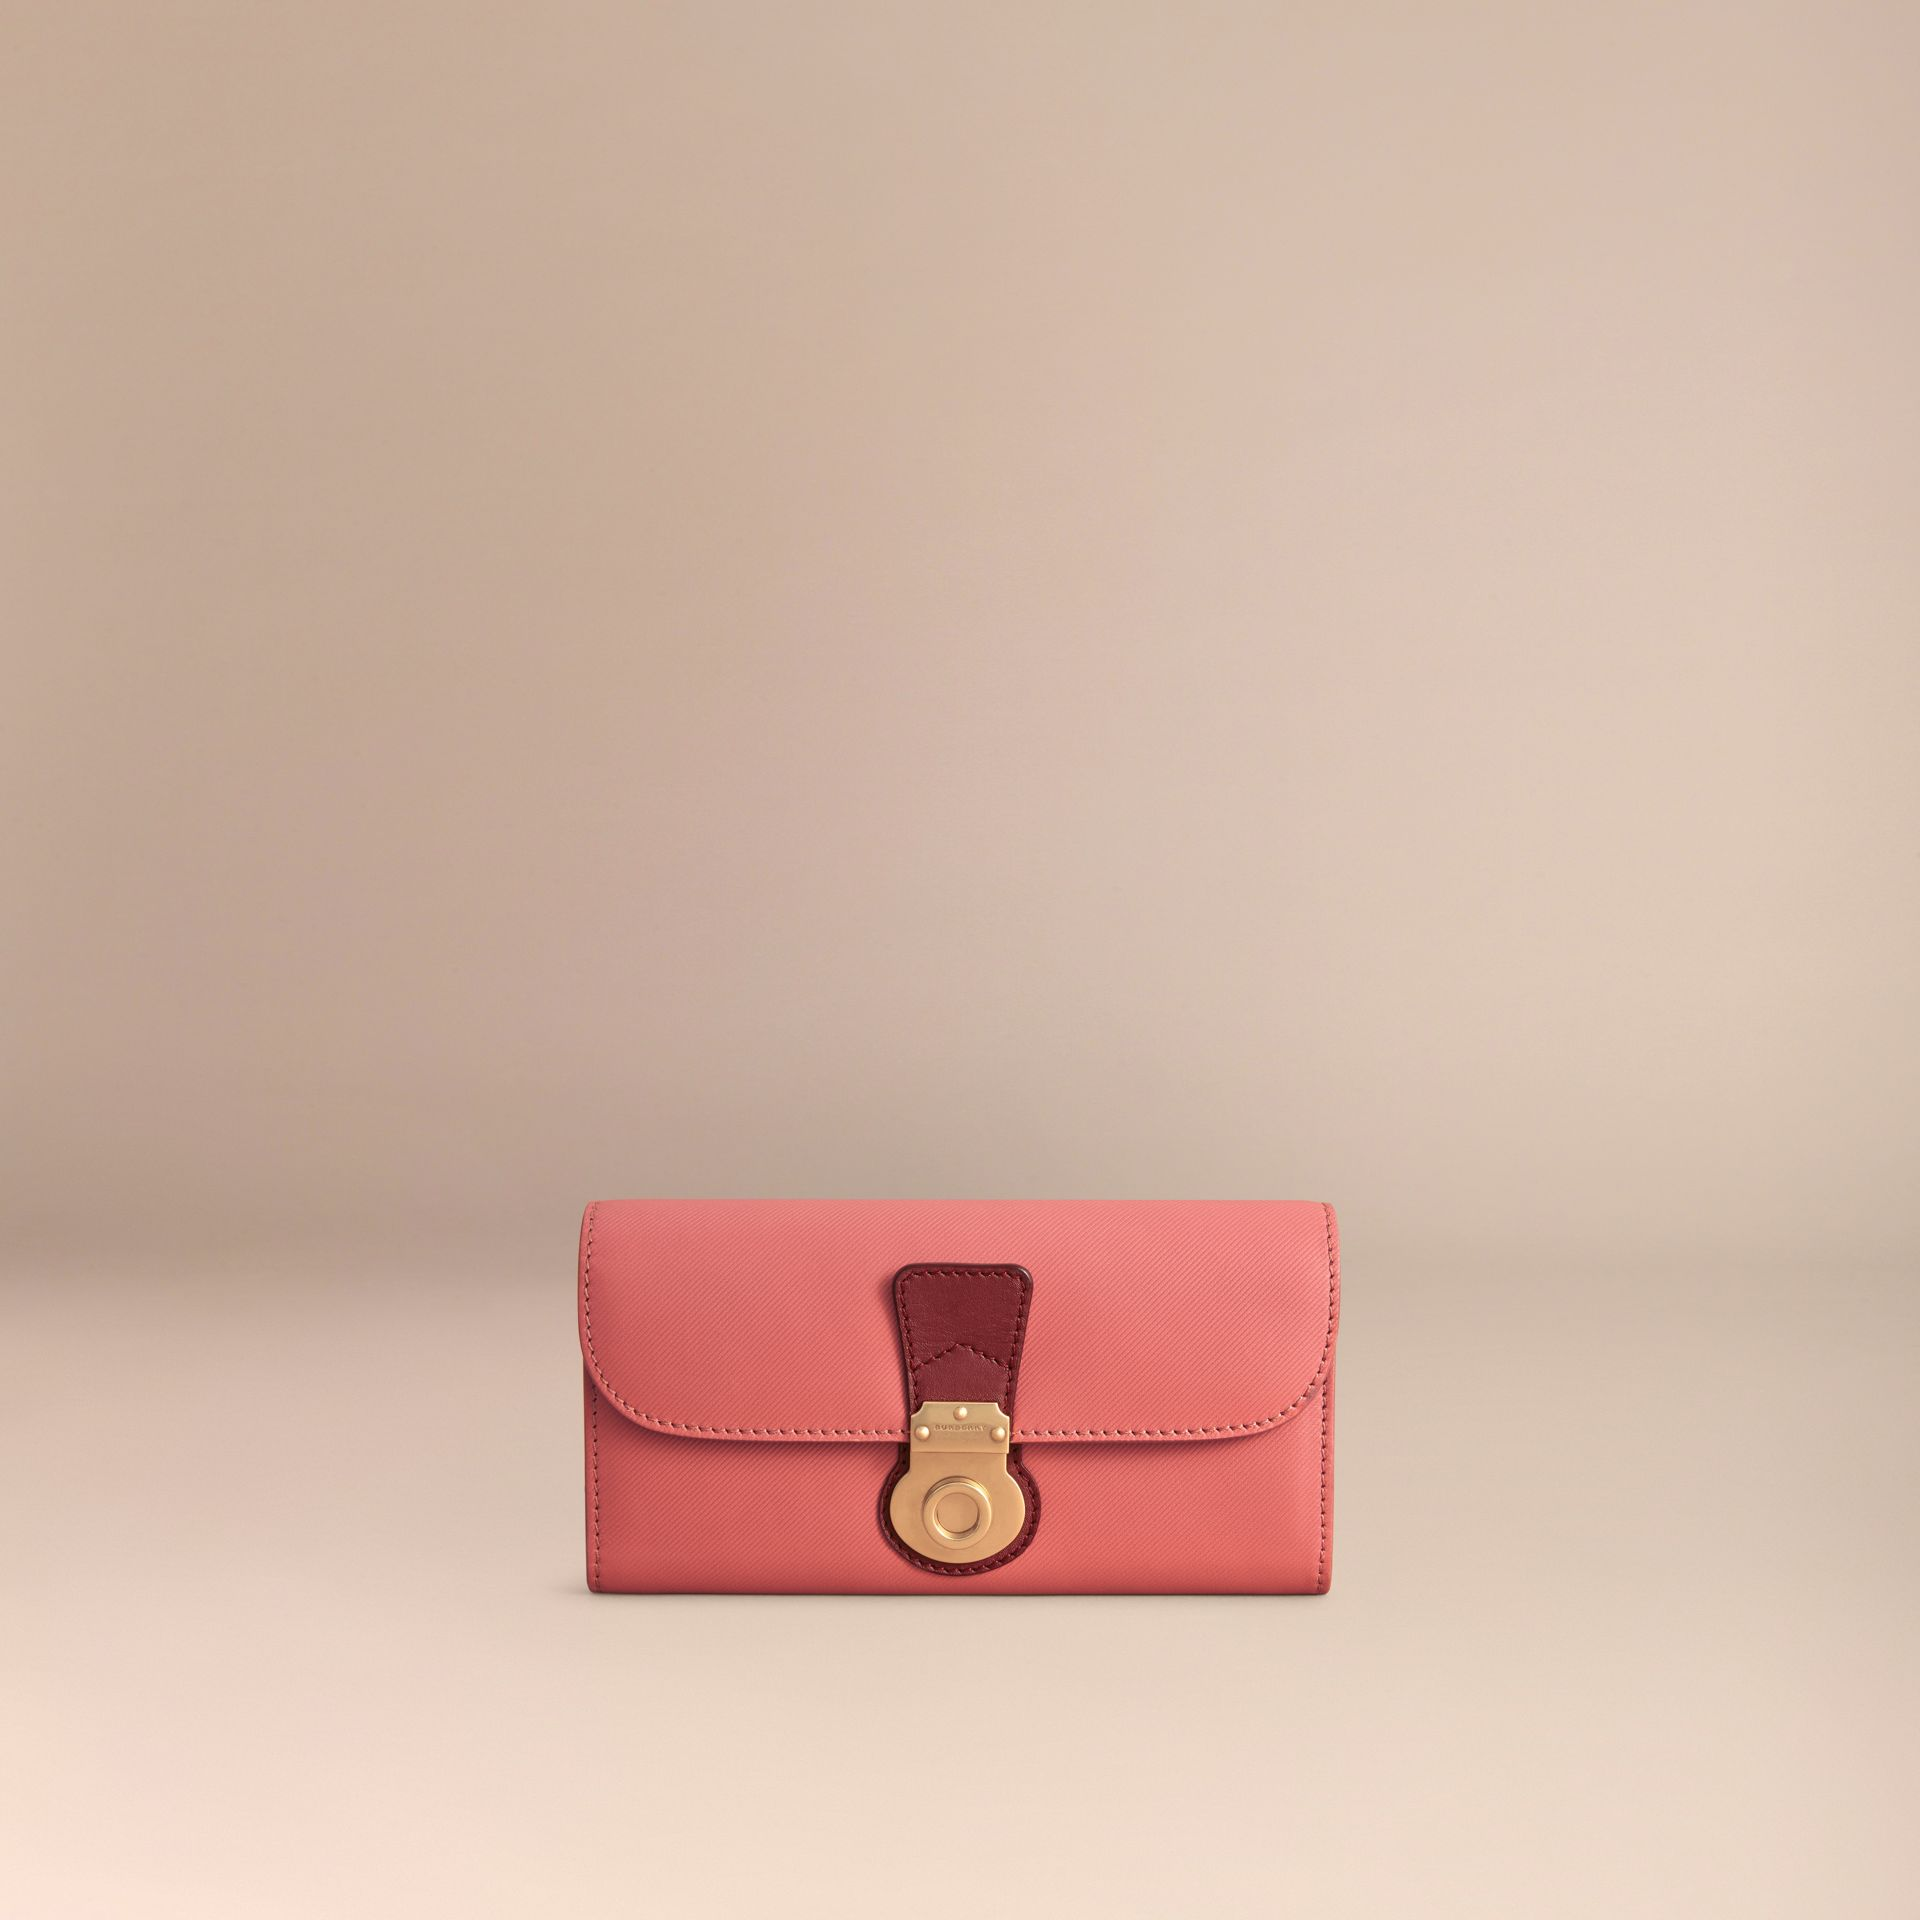 Two-tone Trench Leather Continental Wallet in Blossom Pink/antique Red - Women | Burberry - gallery image 6